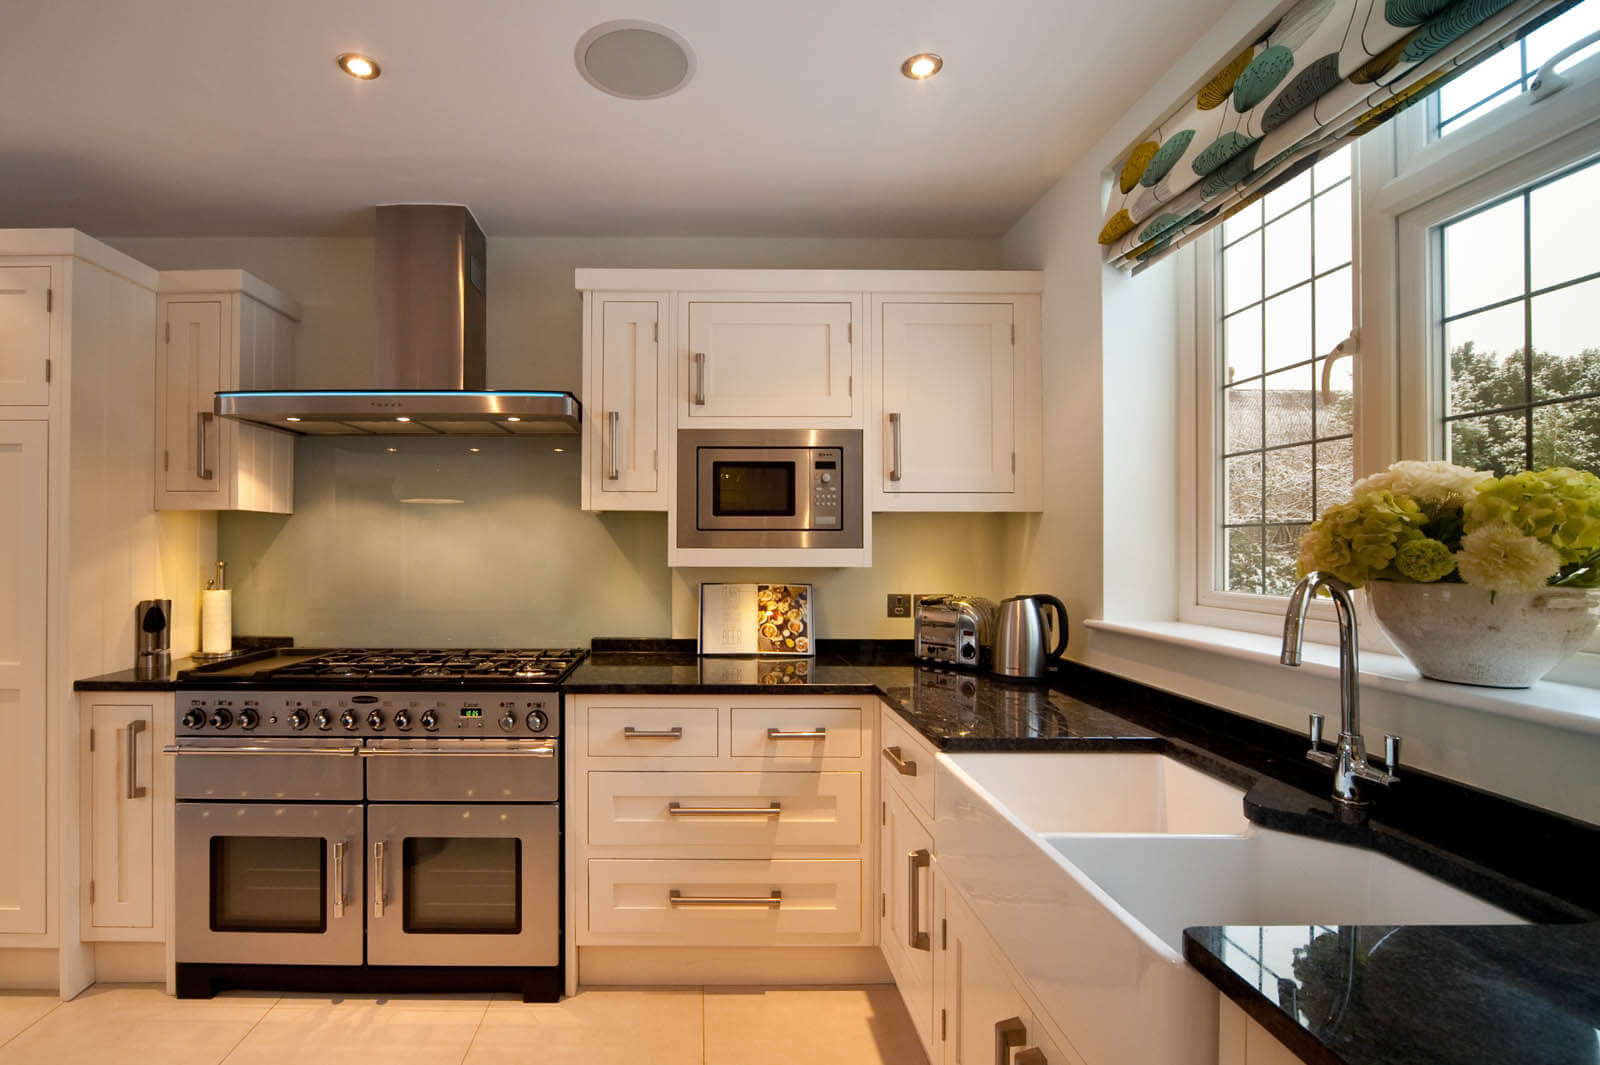 steel-grey-granite-cuckfield-sussex-kitchens-110827a-range-double-belfast_1